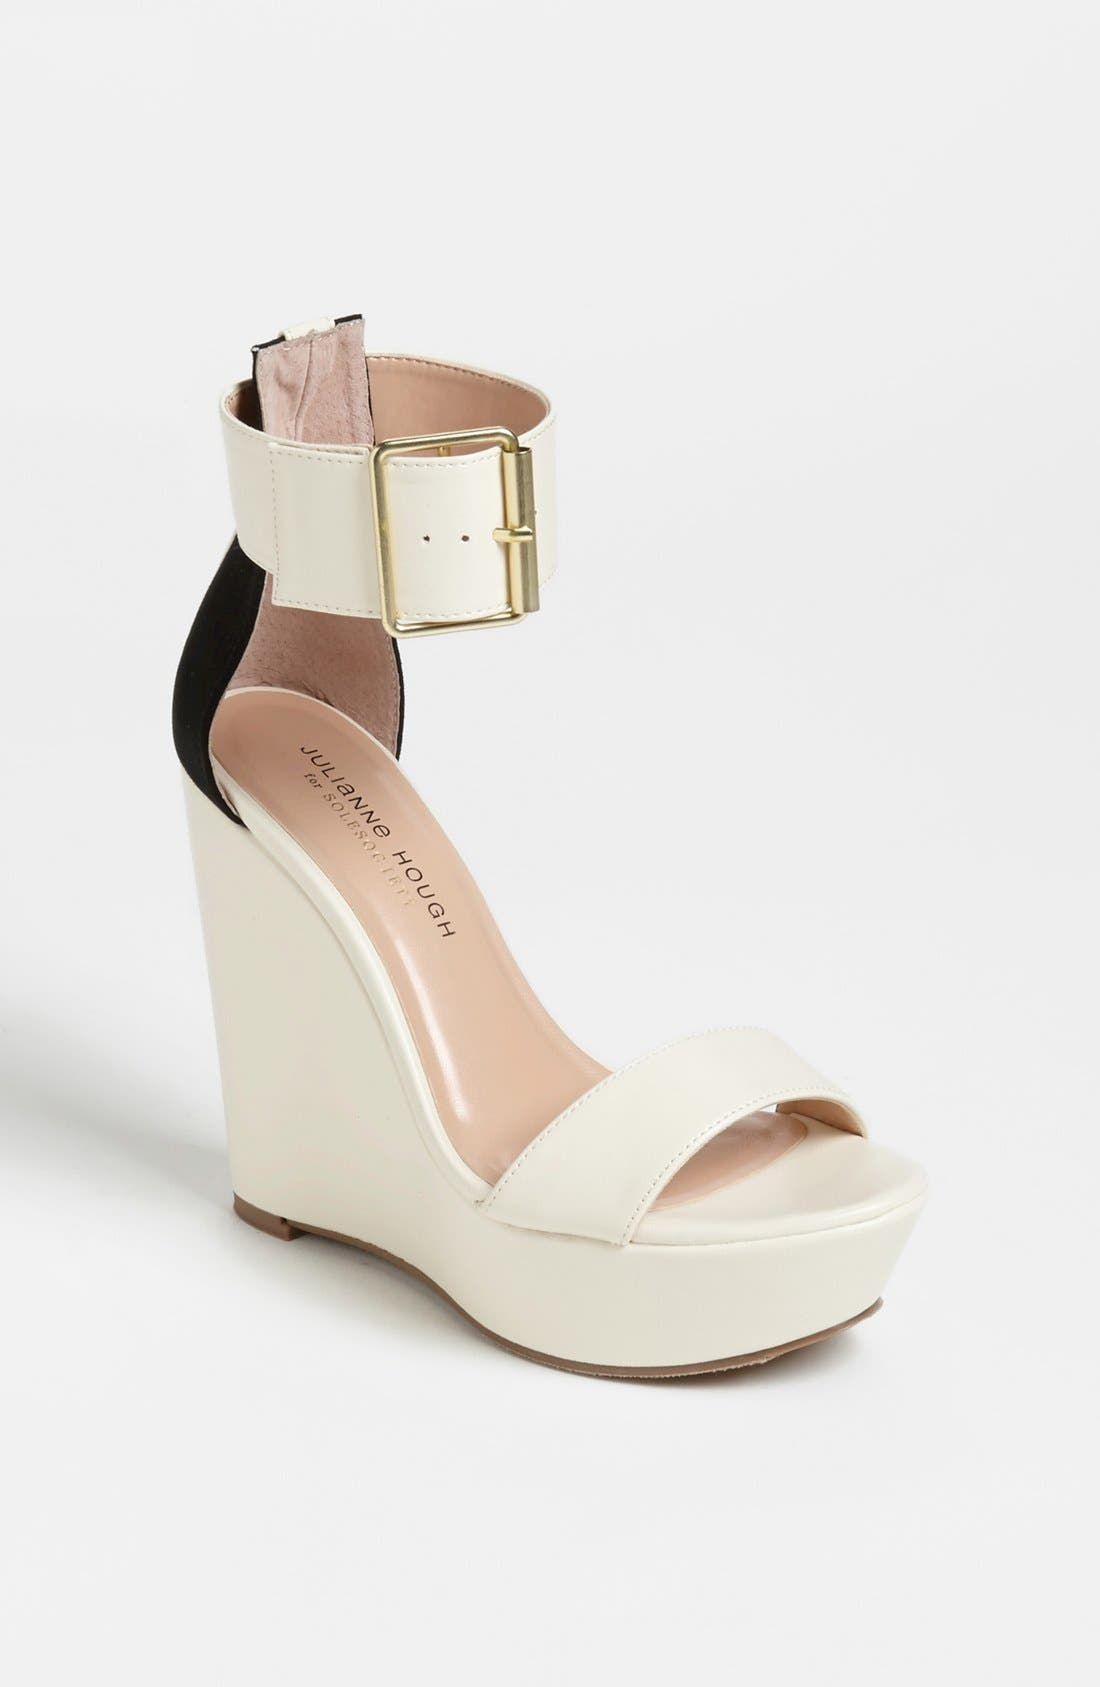 Main Image - Julianne Hough for Sole Society 'Tate' Wedge Sandal